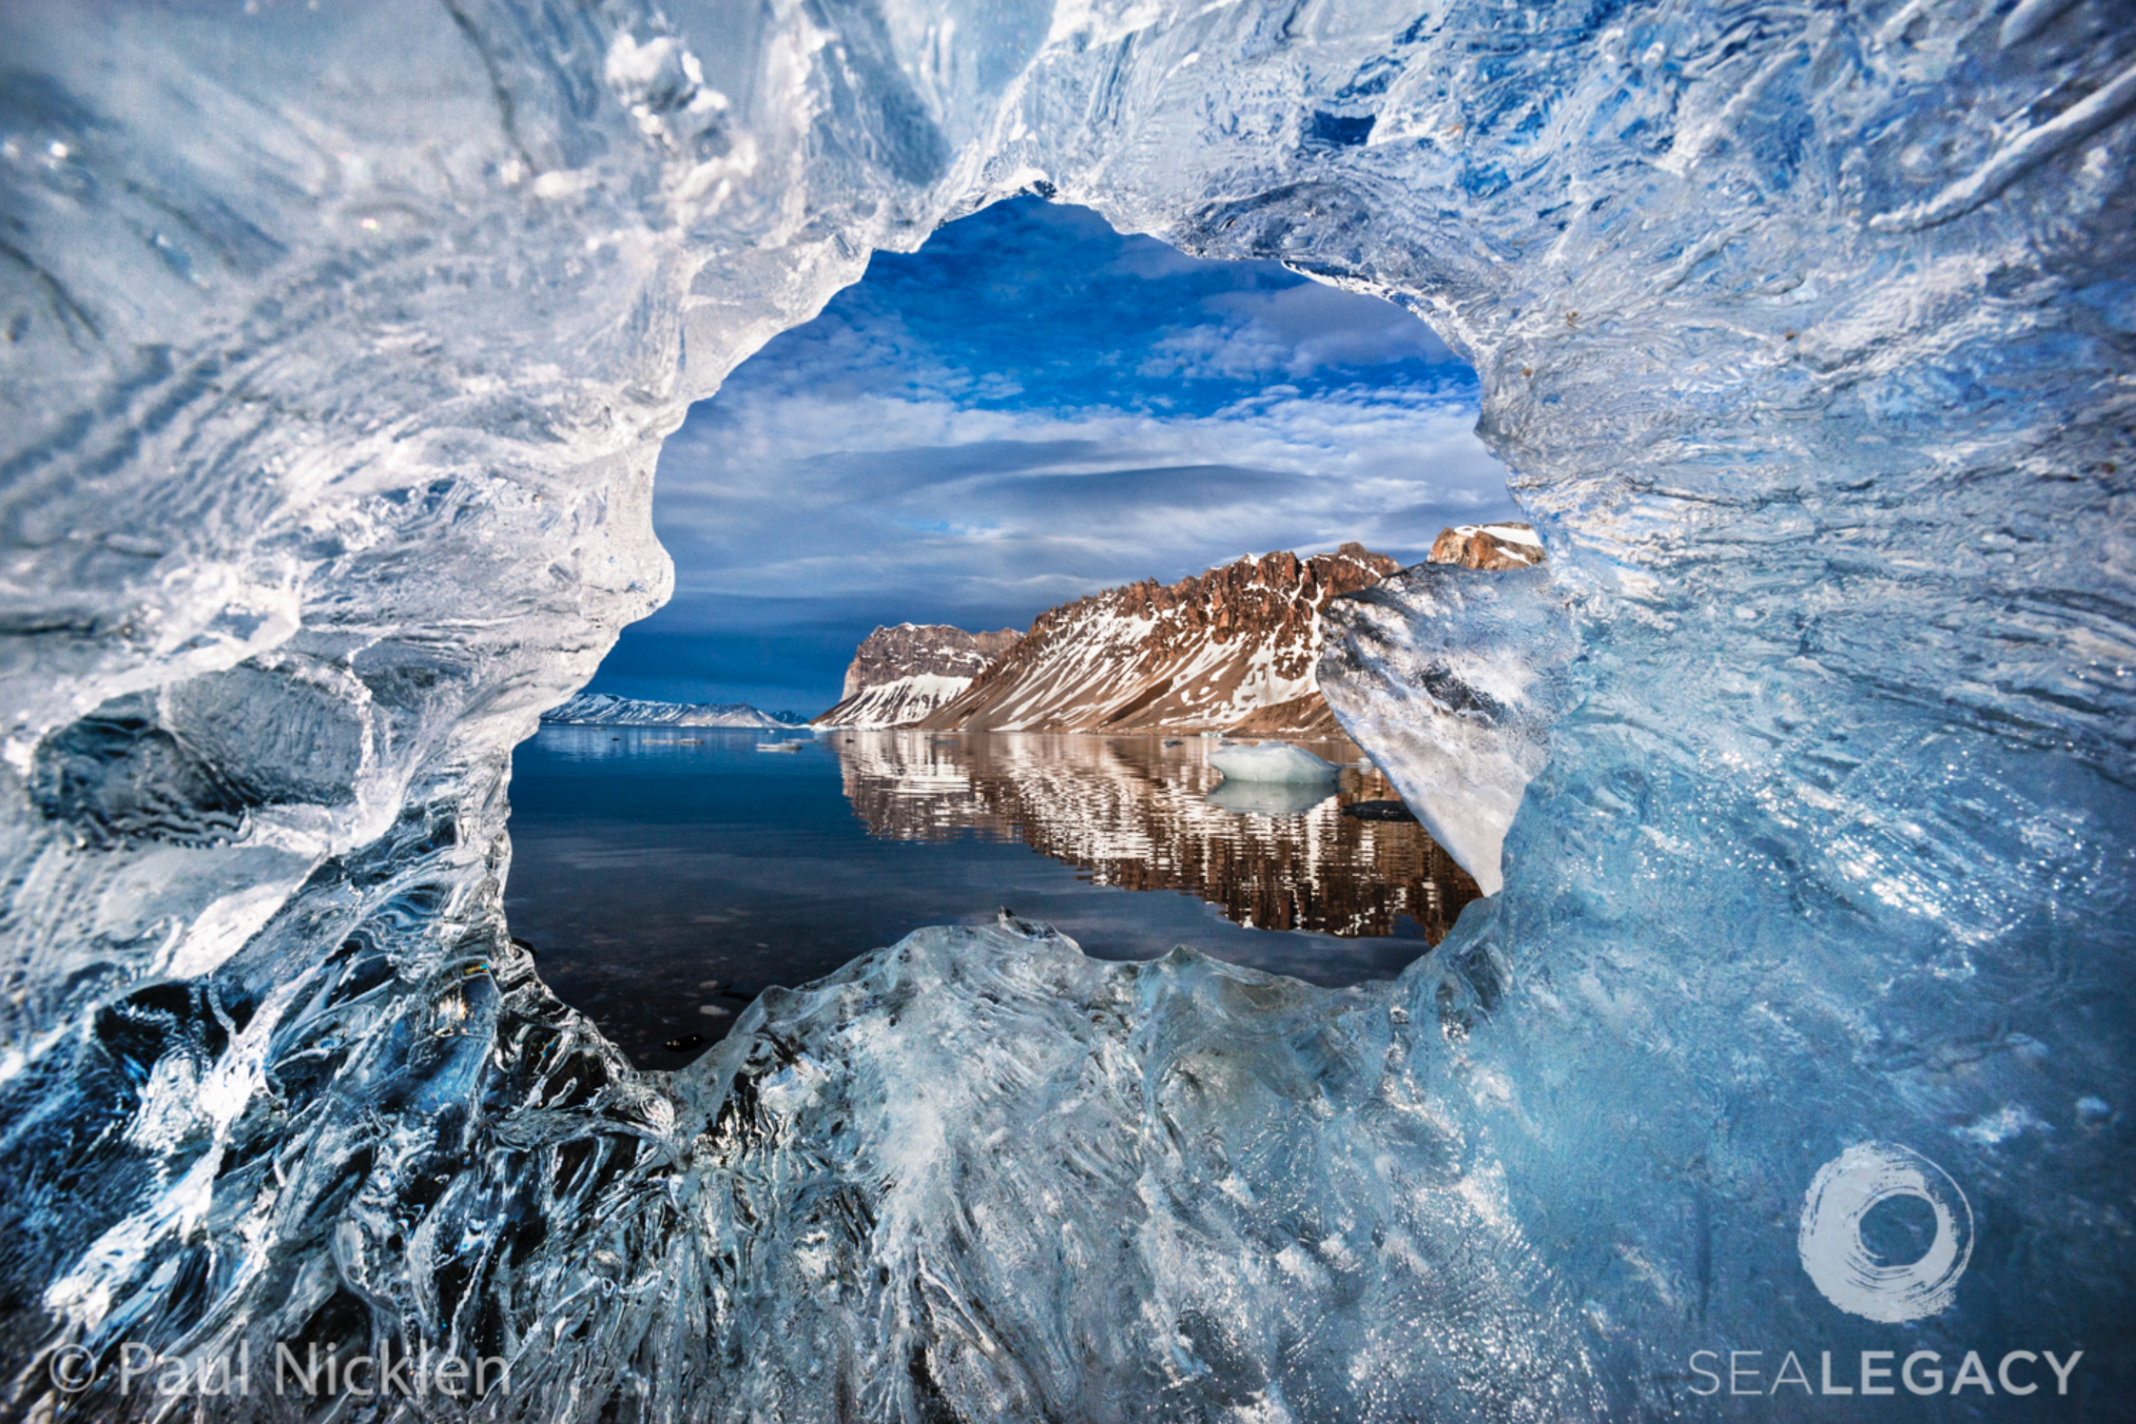 Paul Nicklen, Through the Hole  Archival Pigment Print, 20x30 in.